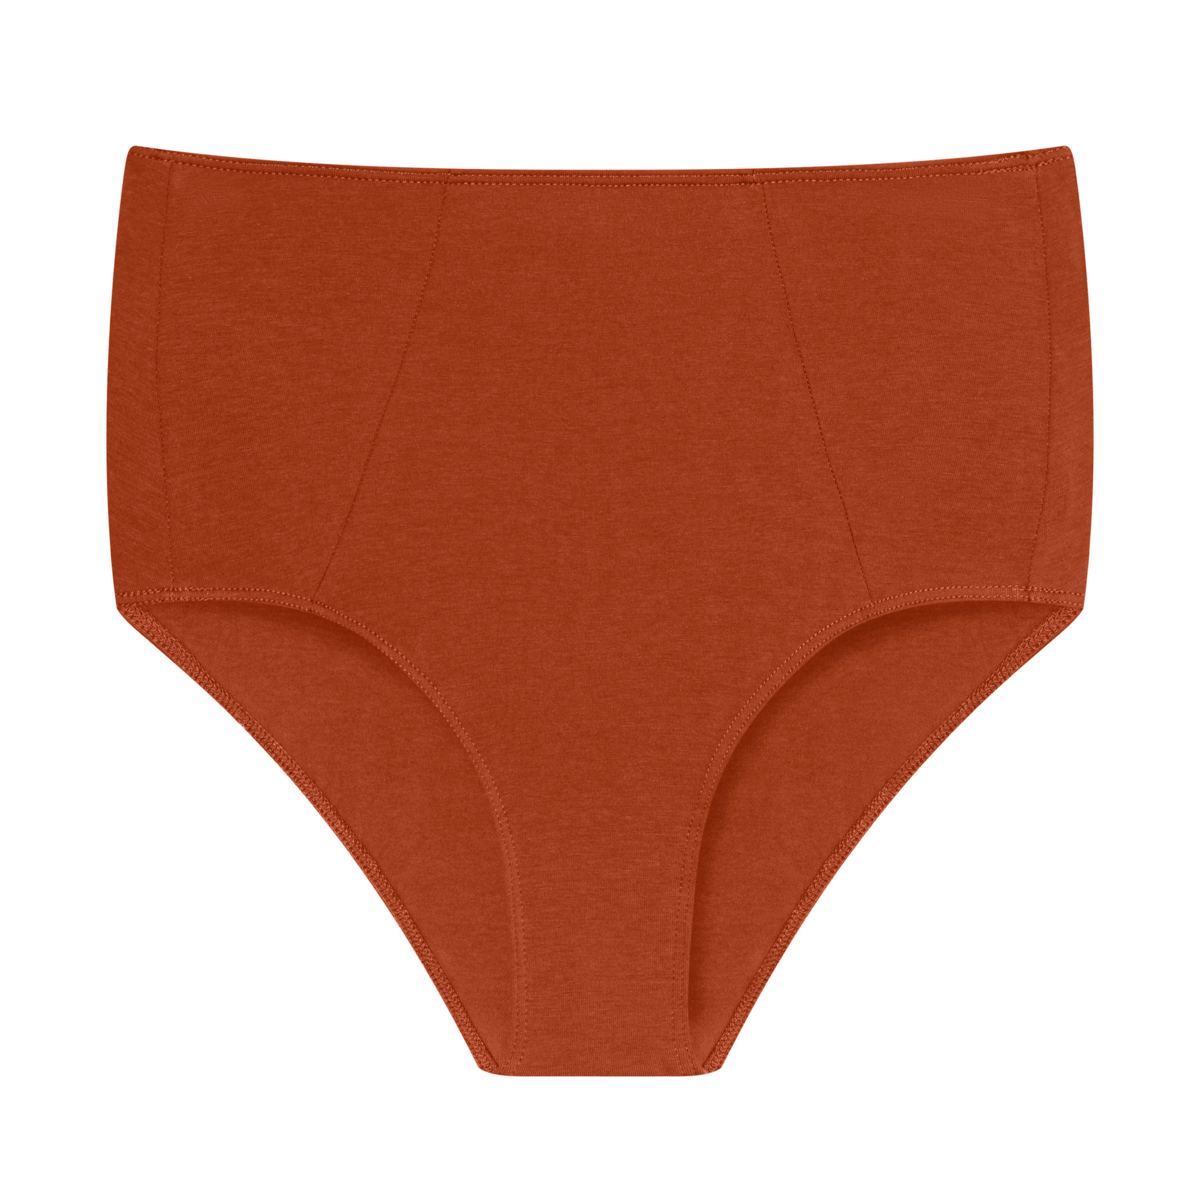 High waisted underwear product image